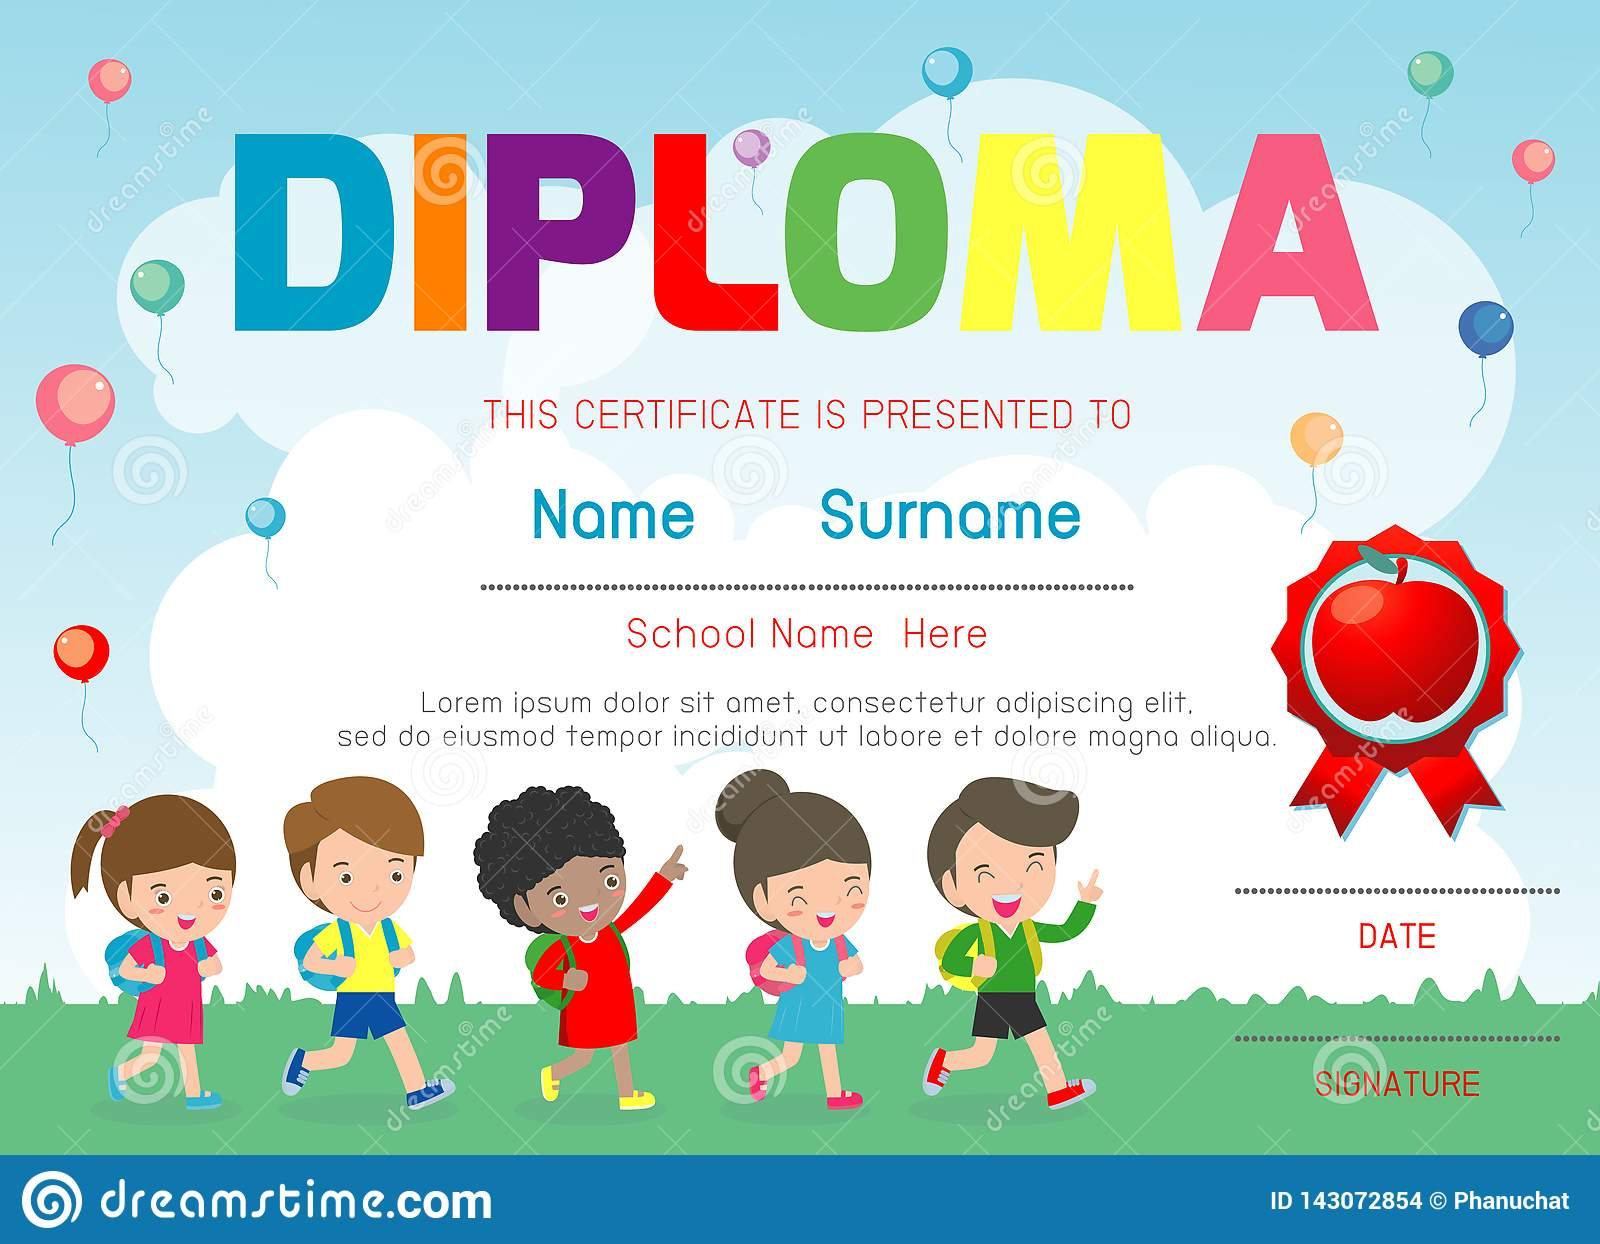 photo regarding Printable Certificates for Kids referred to as Certificates Kindergarten And Basic, Preschool Youngsters